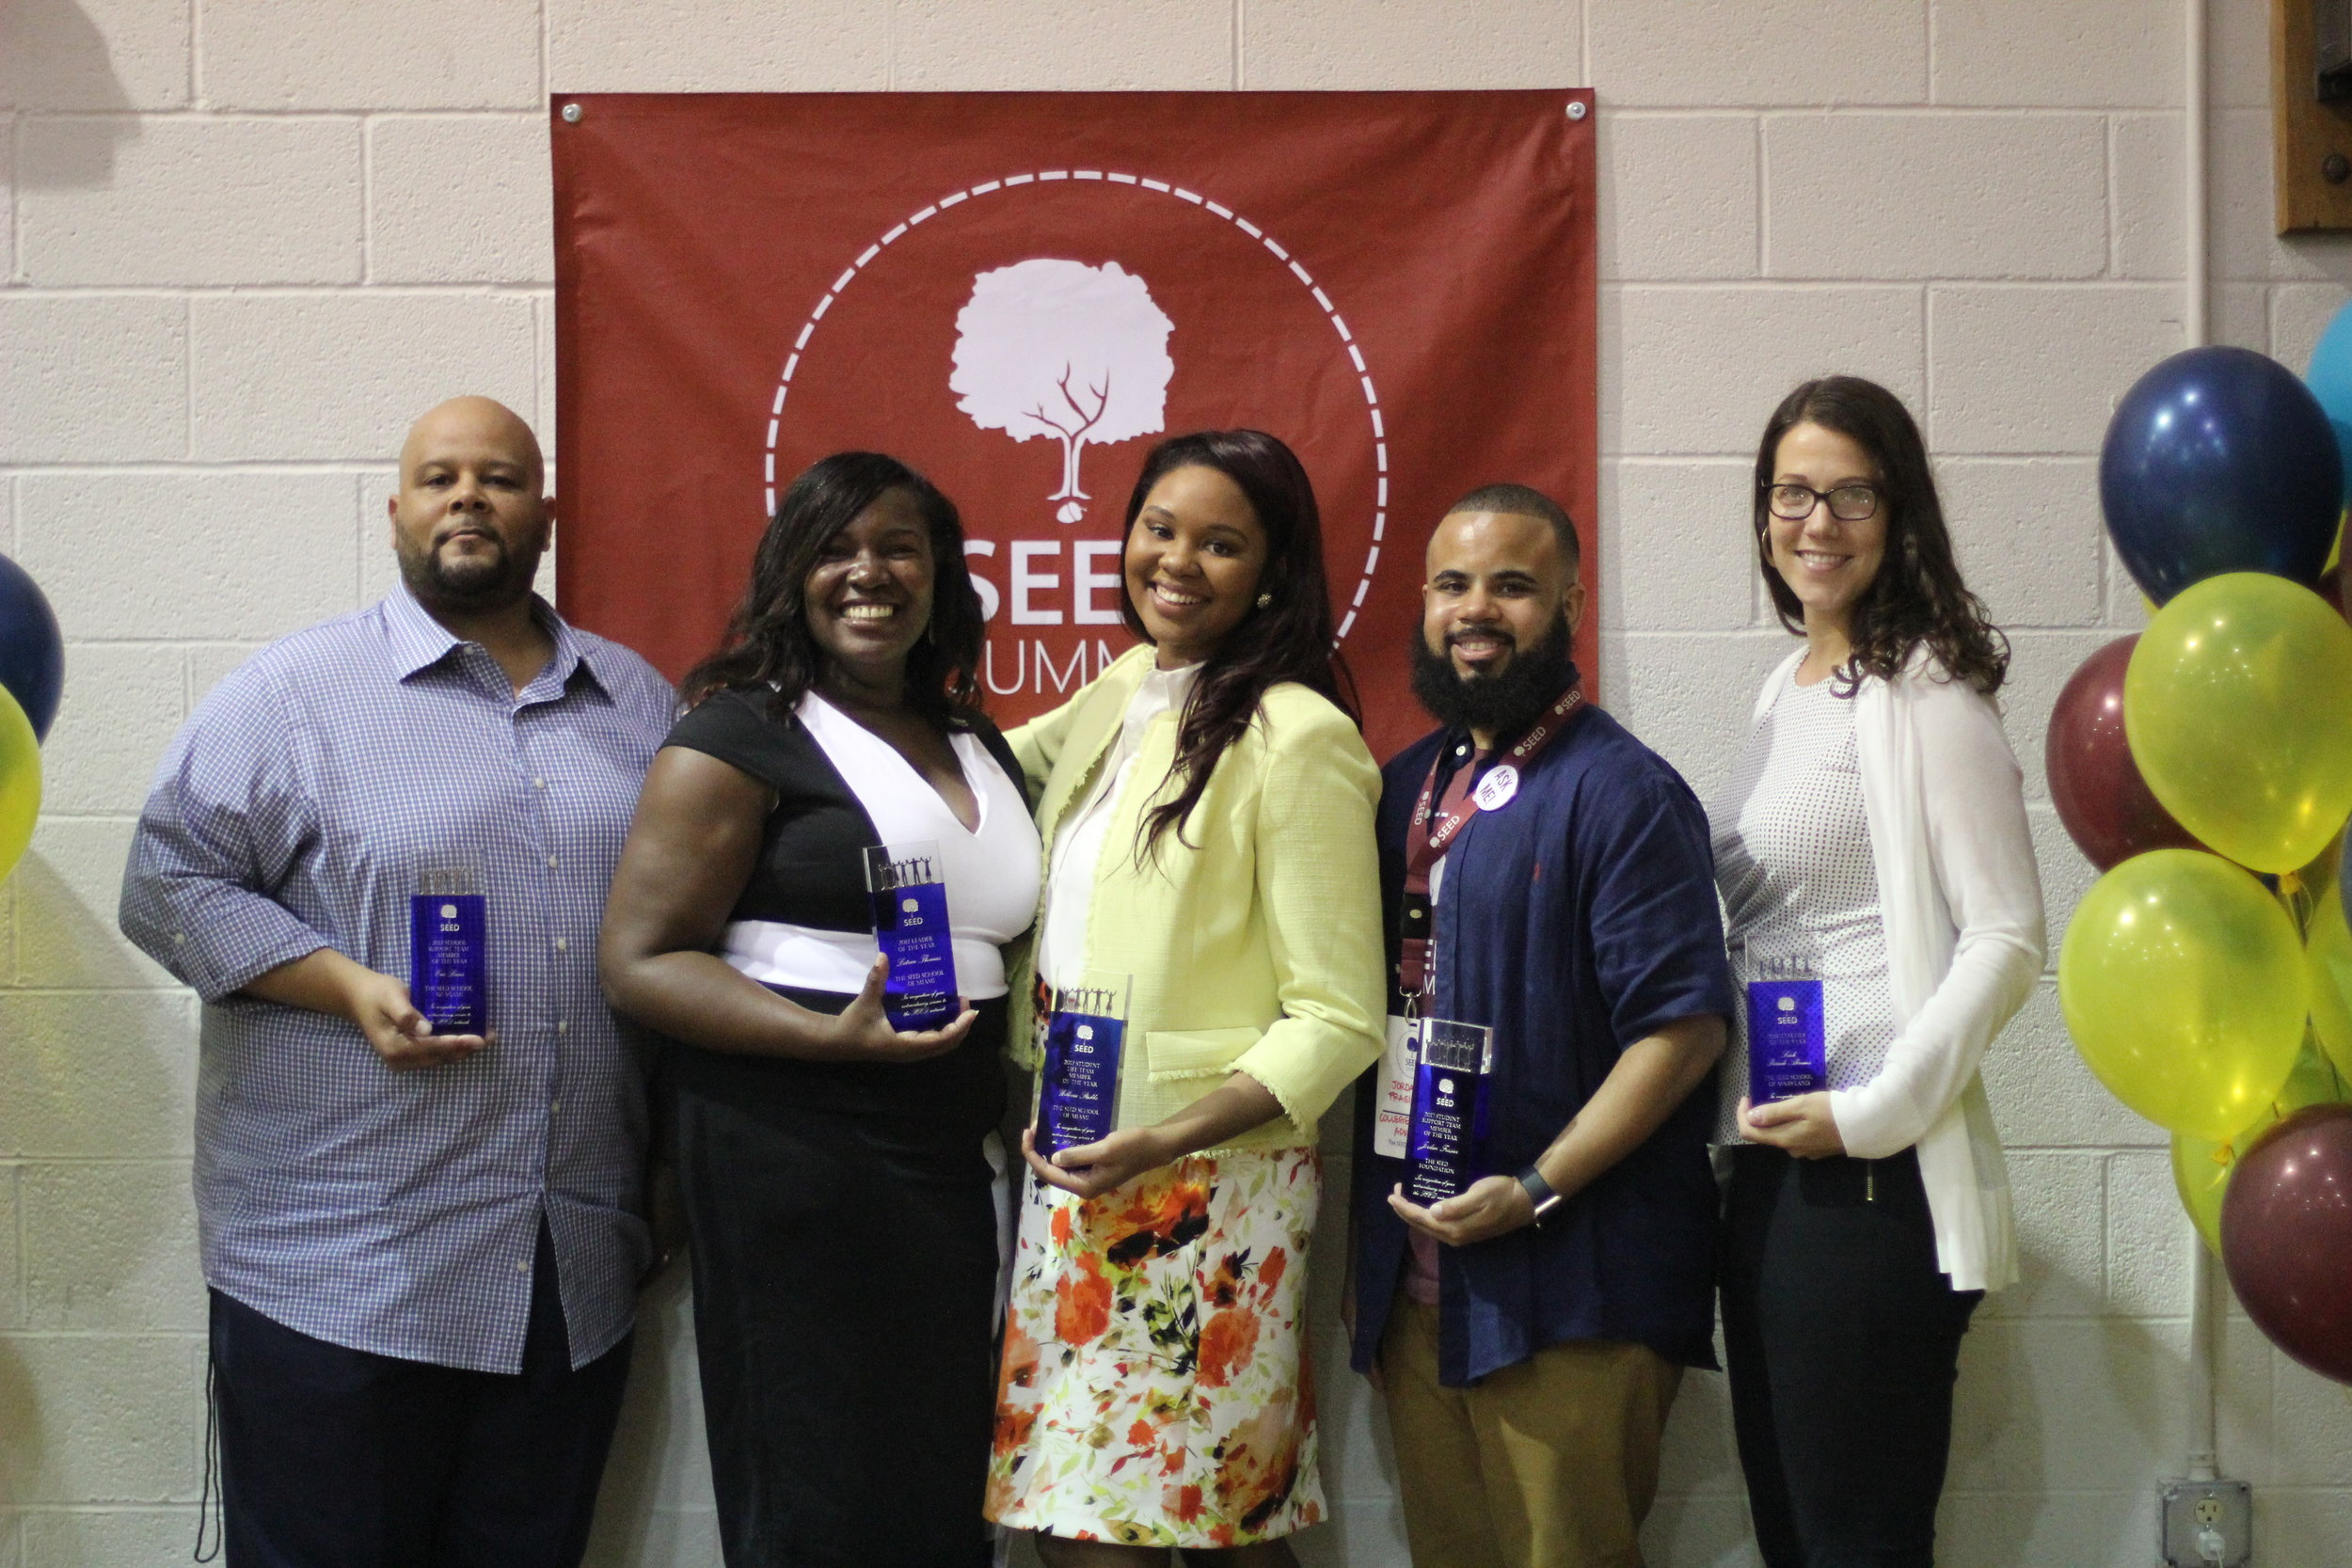 The 2017 SEED Staff of the Year Network winners (pictured left to right): Eric Lewis (SEED Miami), Latrice Thomas (SEED Miami), Willecia Stubbs (SEED Miami), Jordan Frasier (SEED Foundation), and Leah Prandi-Abrams (SEED Maryland).